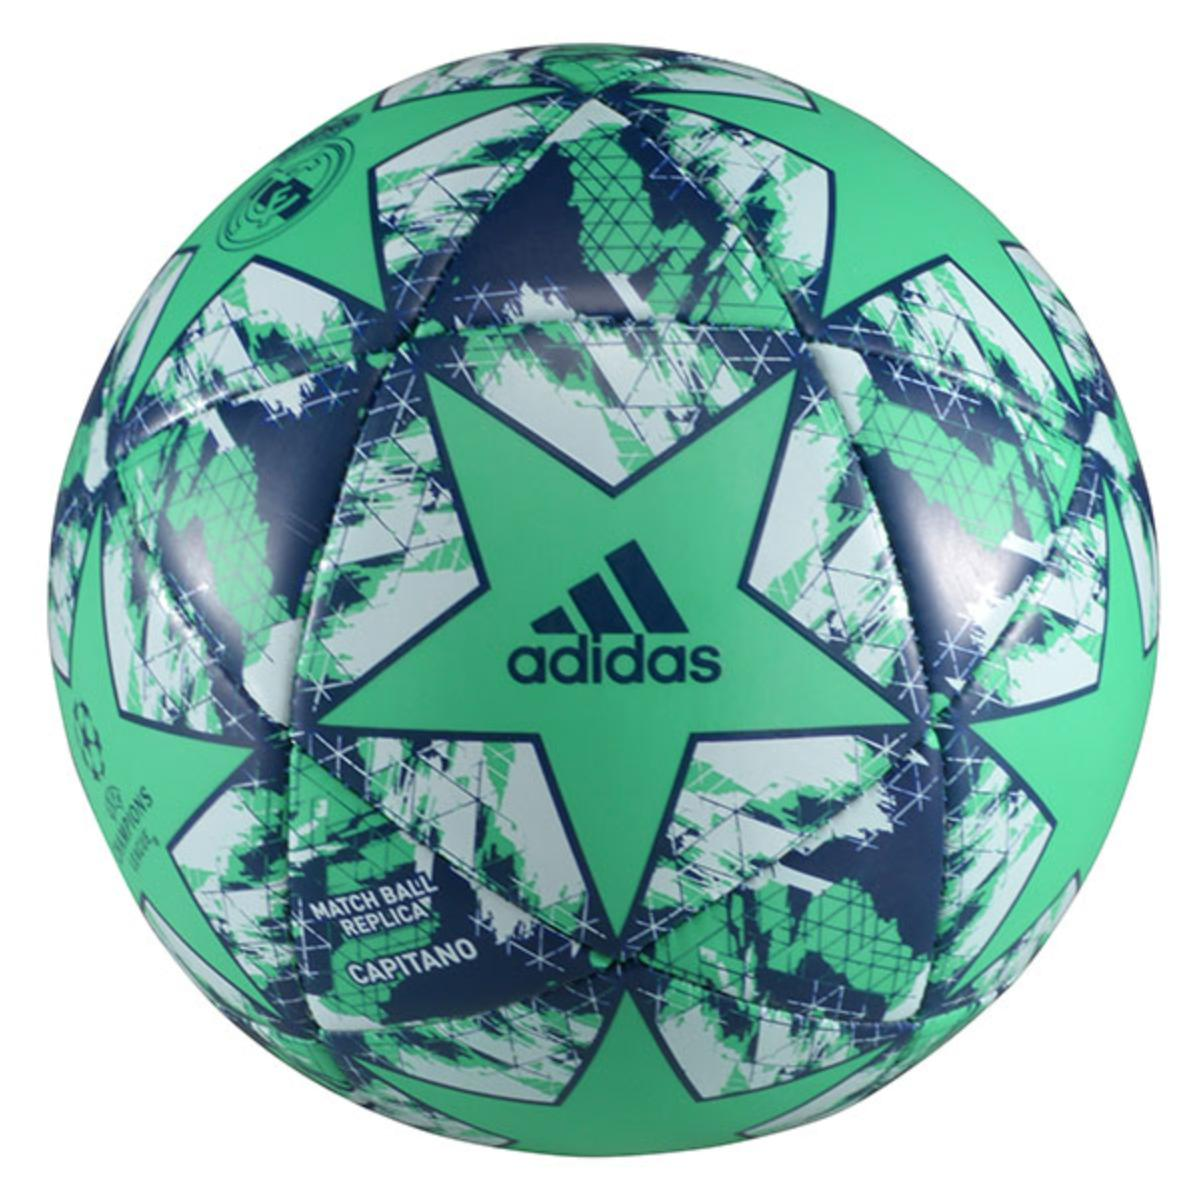 Bola Masculina Adidas Dy2541 Finale rm Cpt Verde